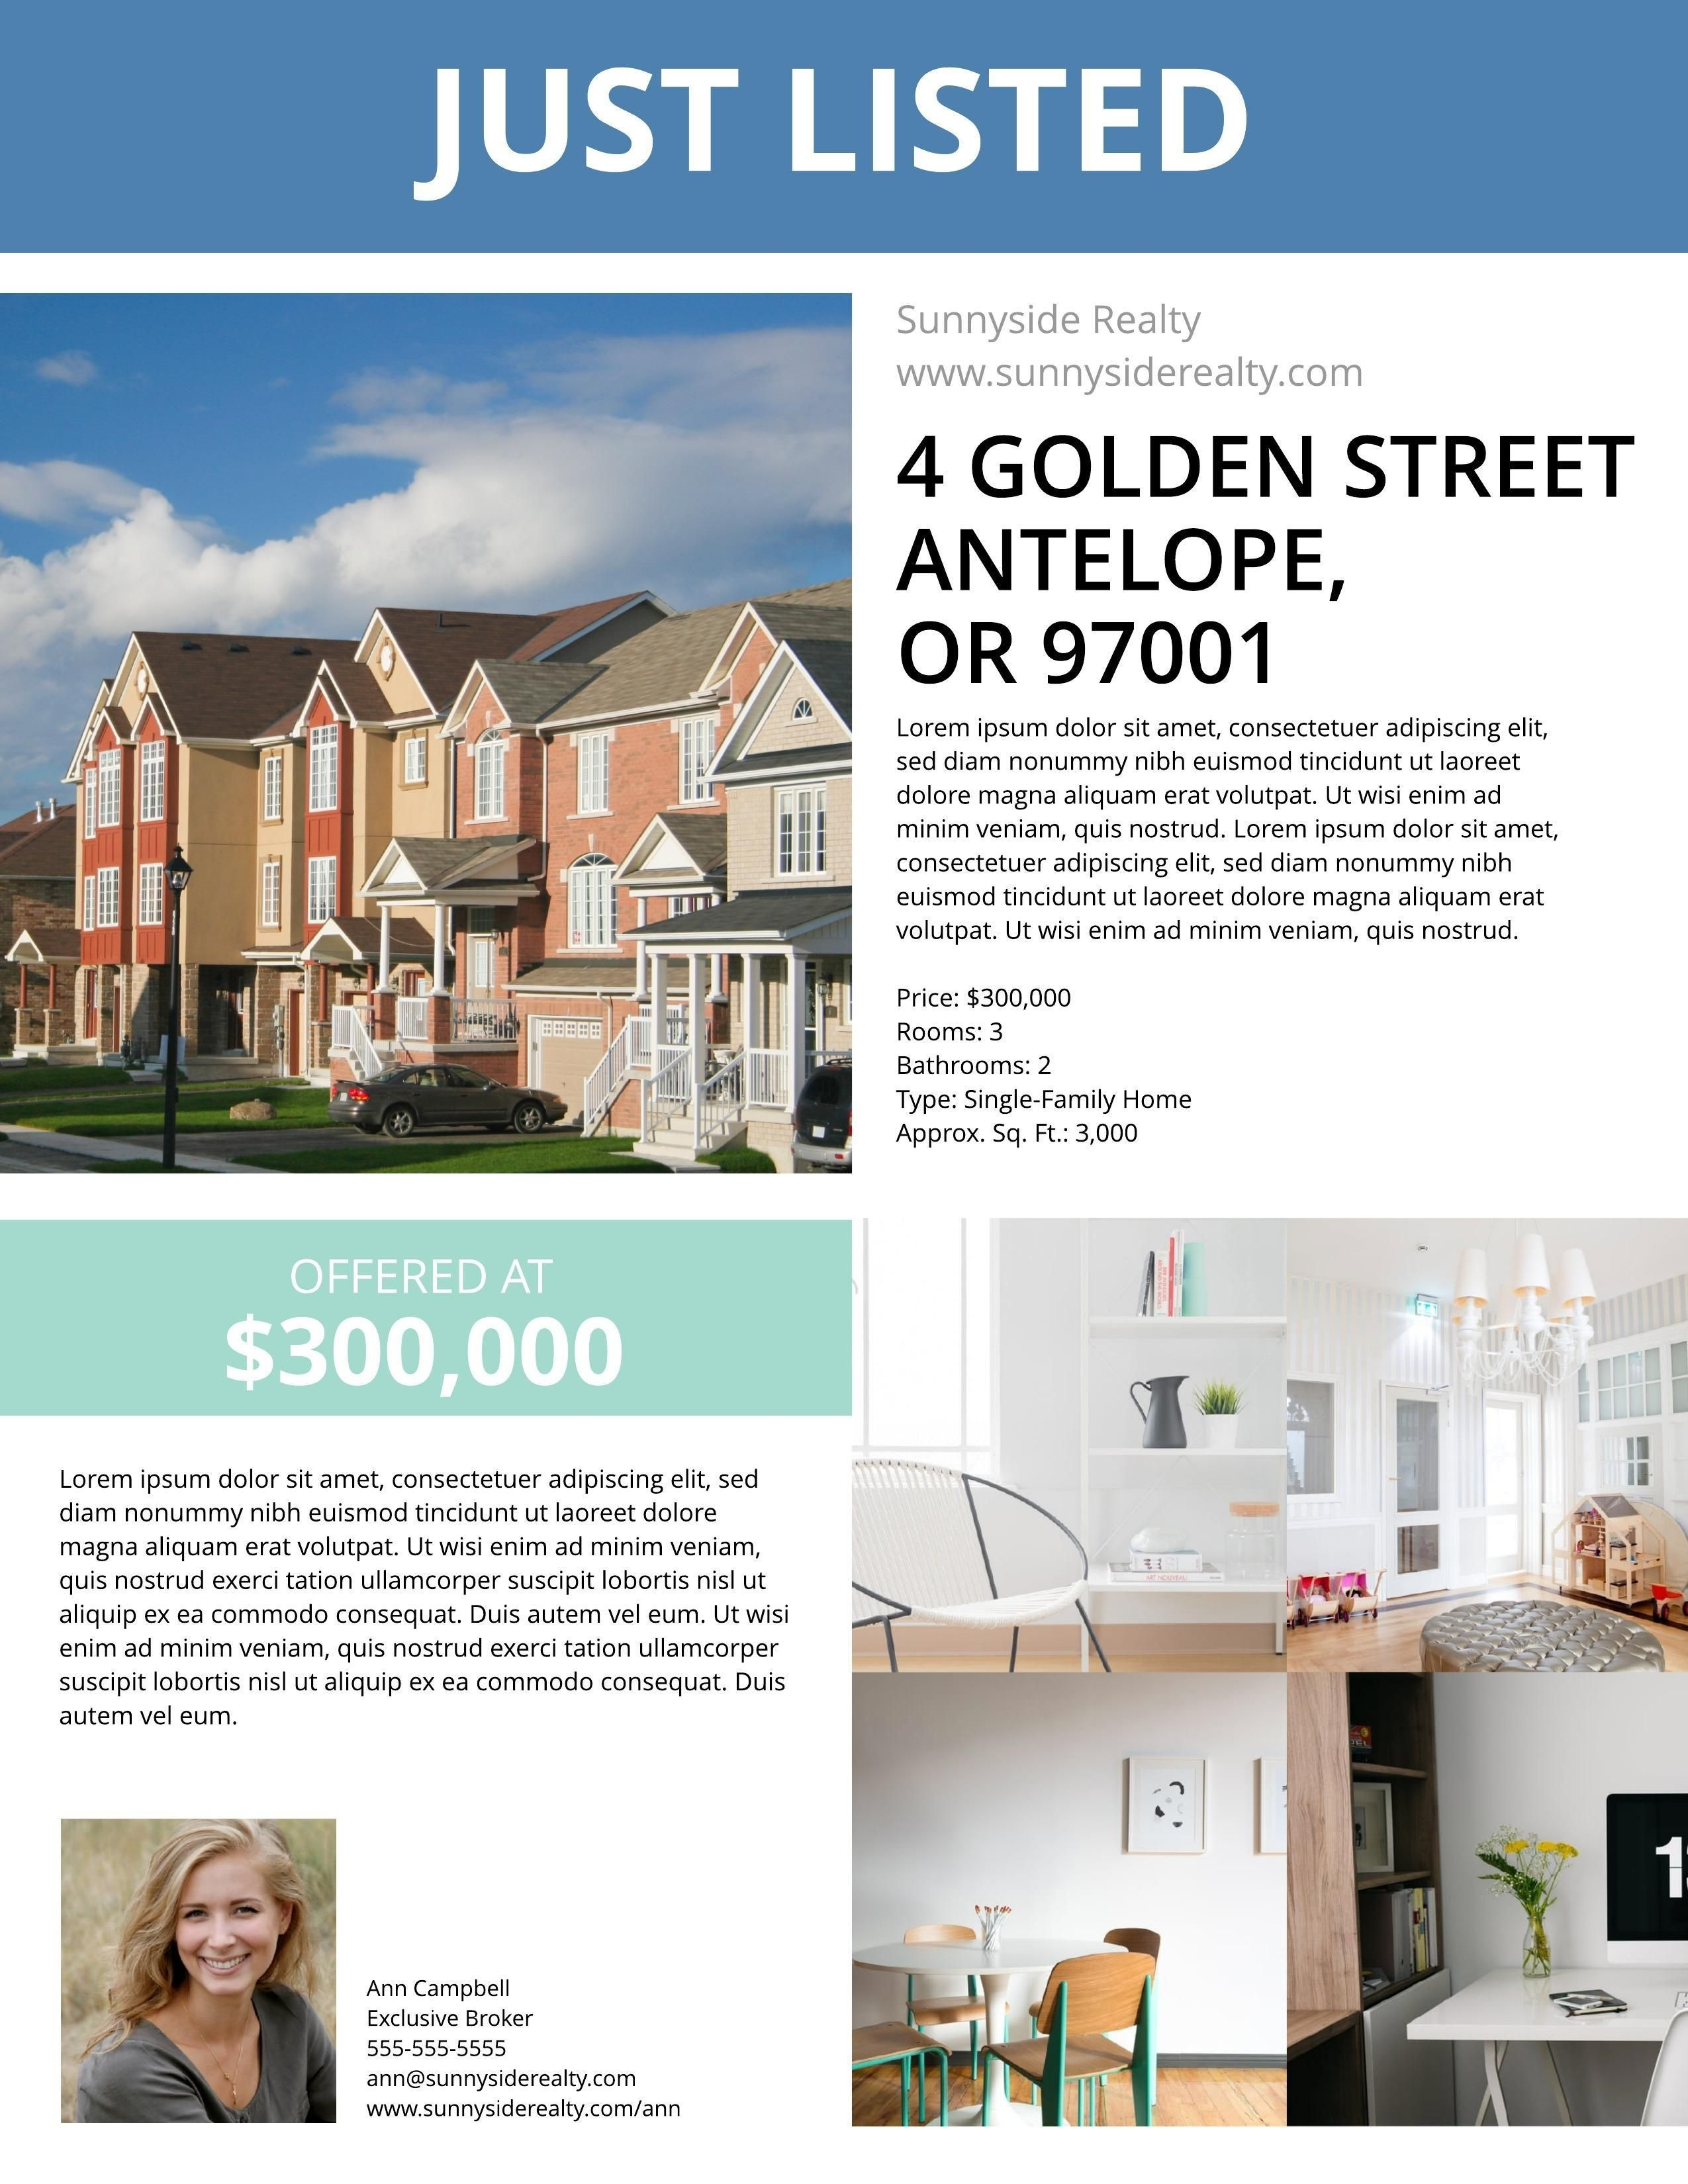 Townhouse Listing Flyer Template | Real Estate Marketing Ideas - Free Printable Real Estate Flyer Templates